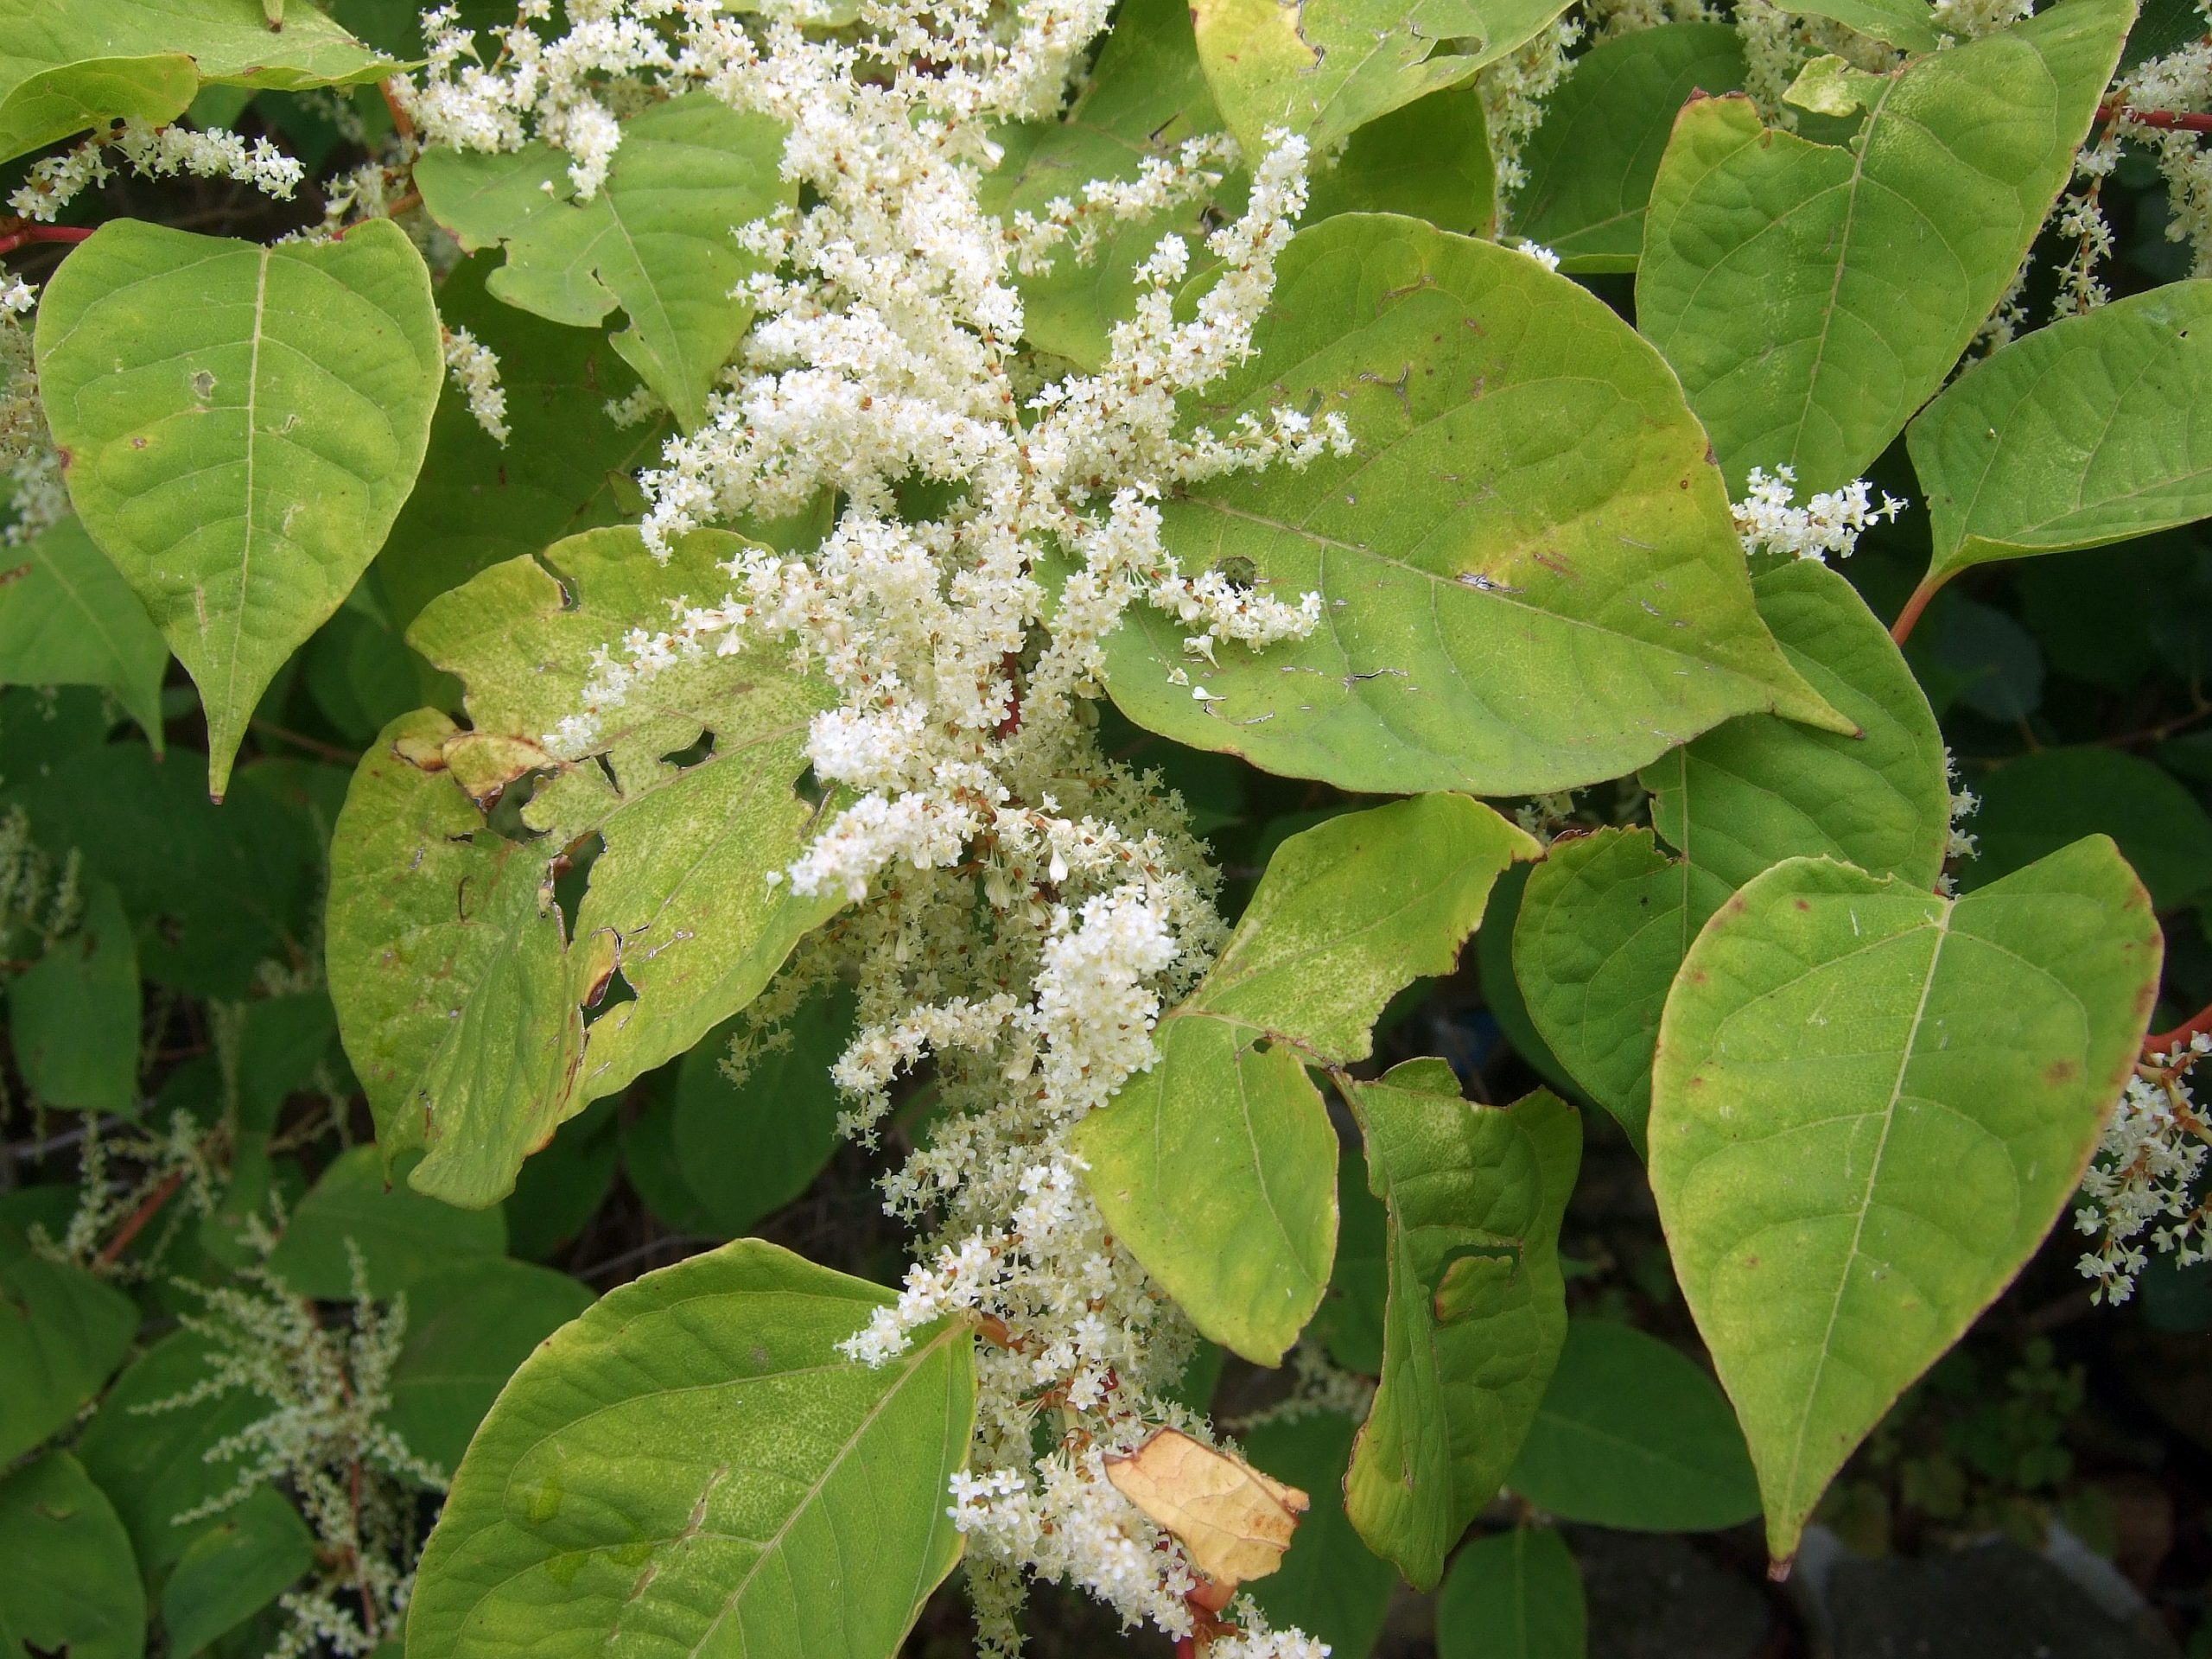 Knotweed flowers